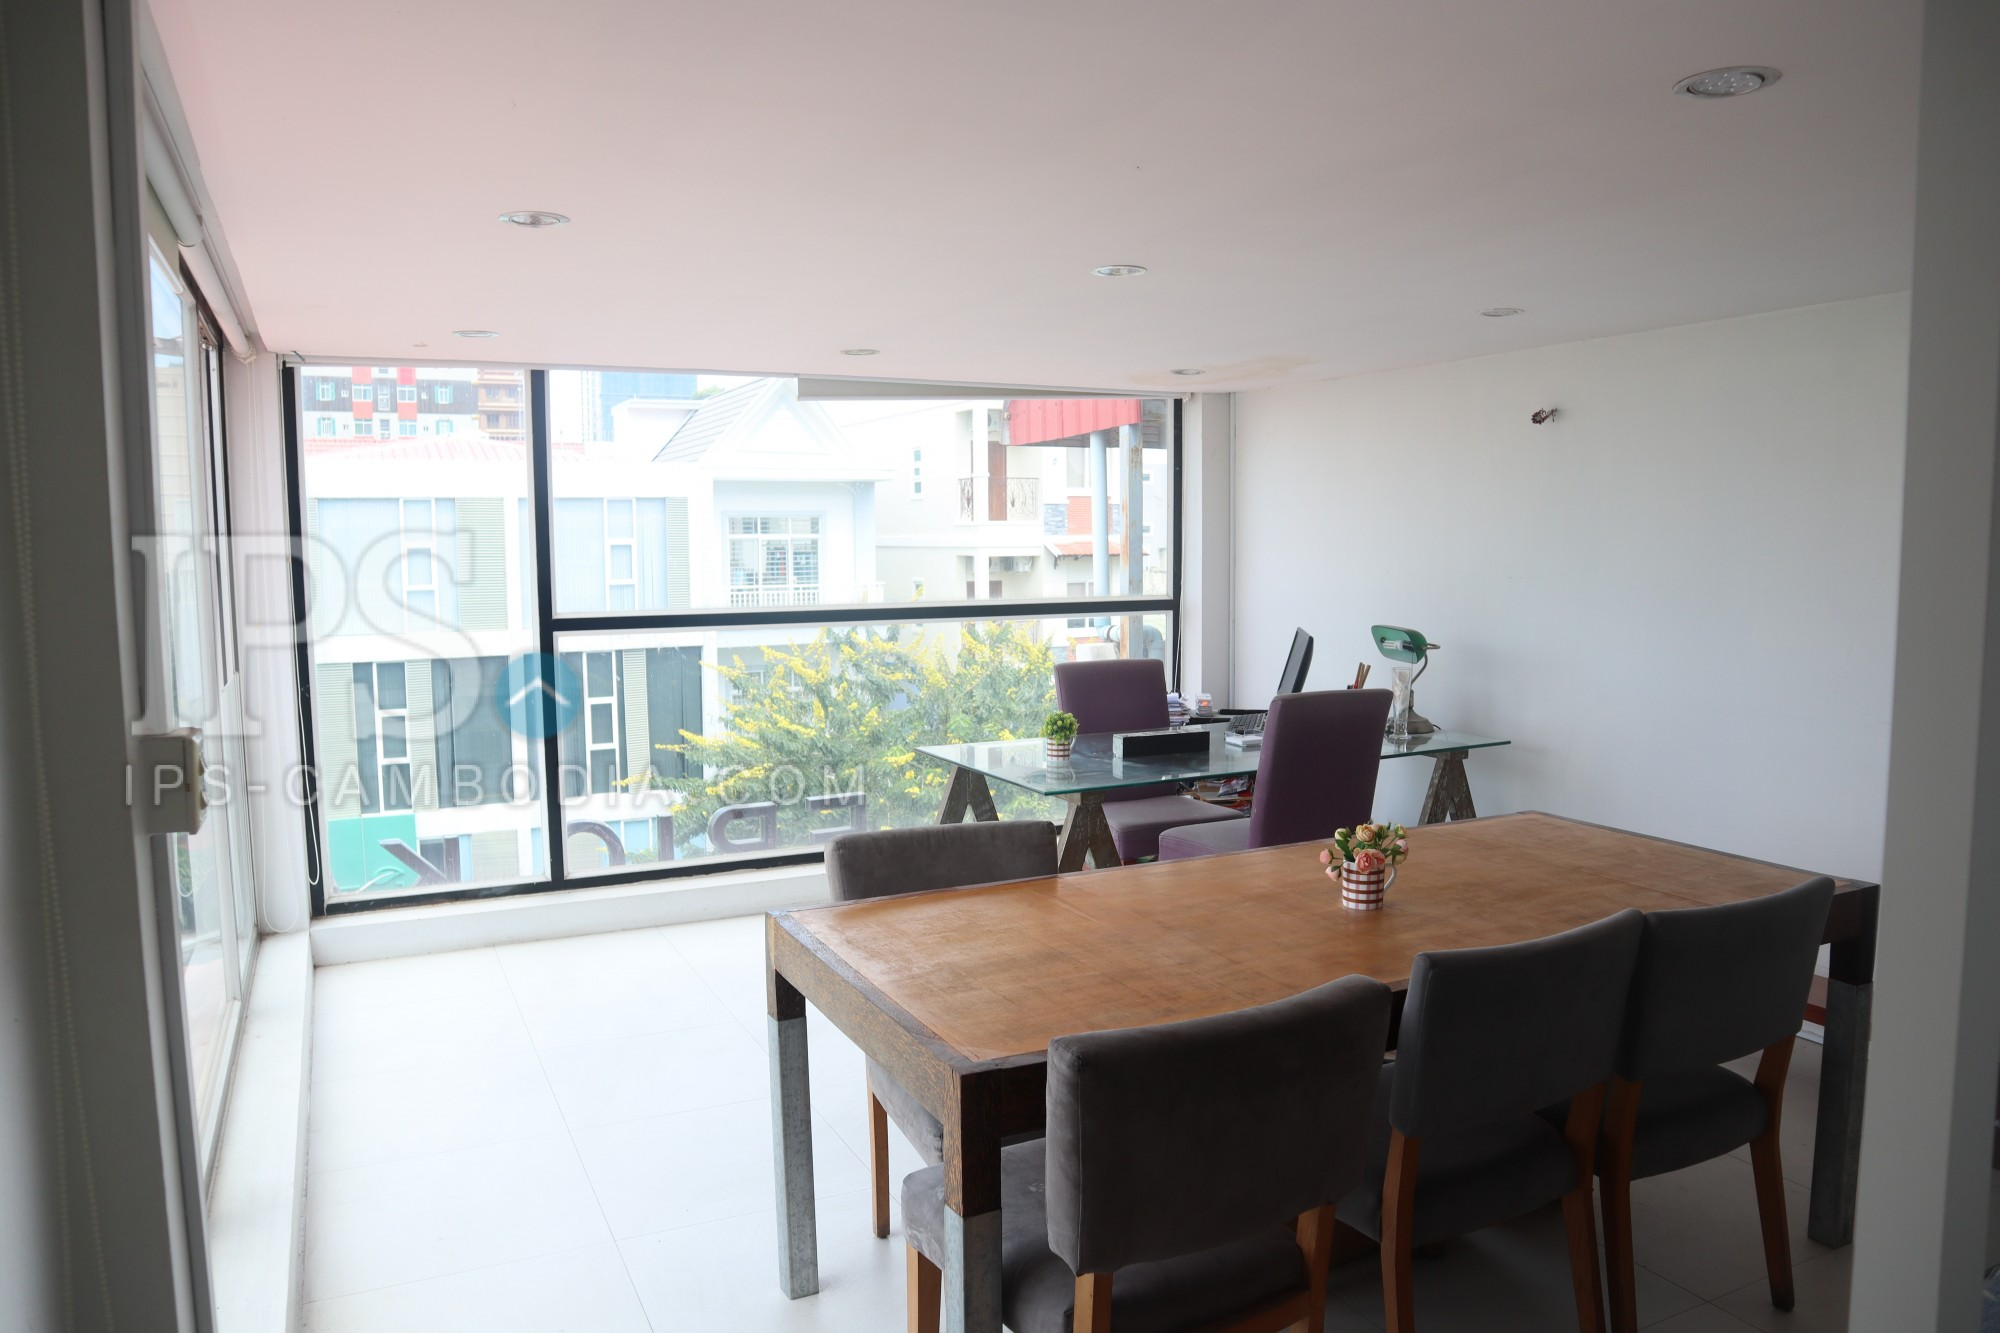 100 Sqm Office For rent - BKK1, Phnom Penh